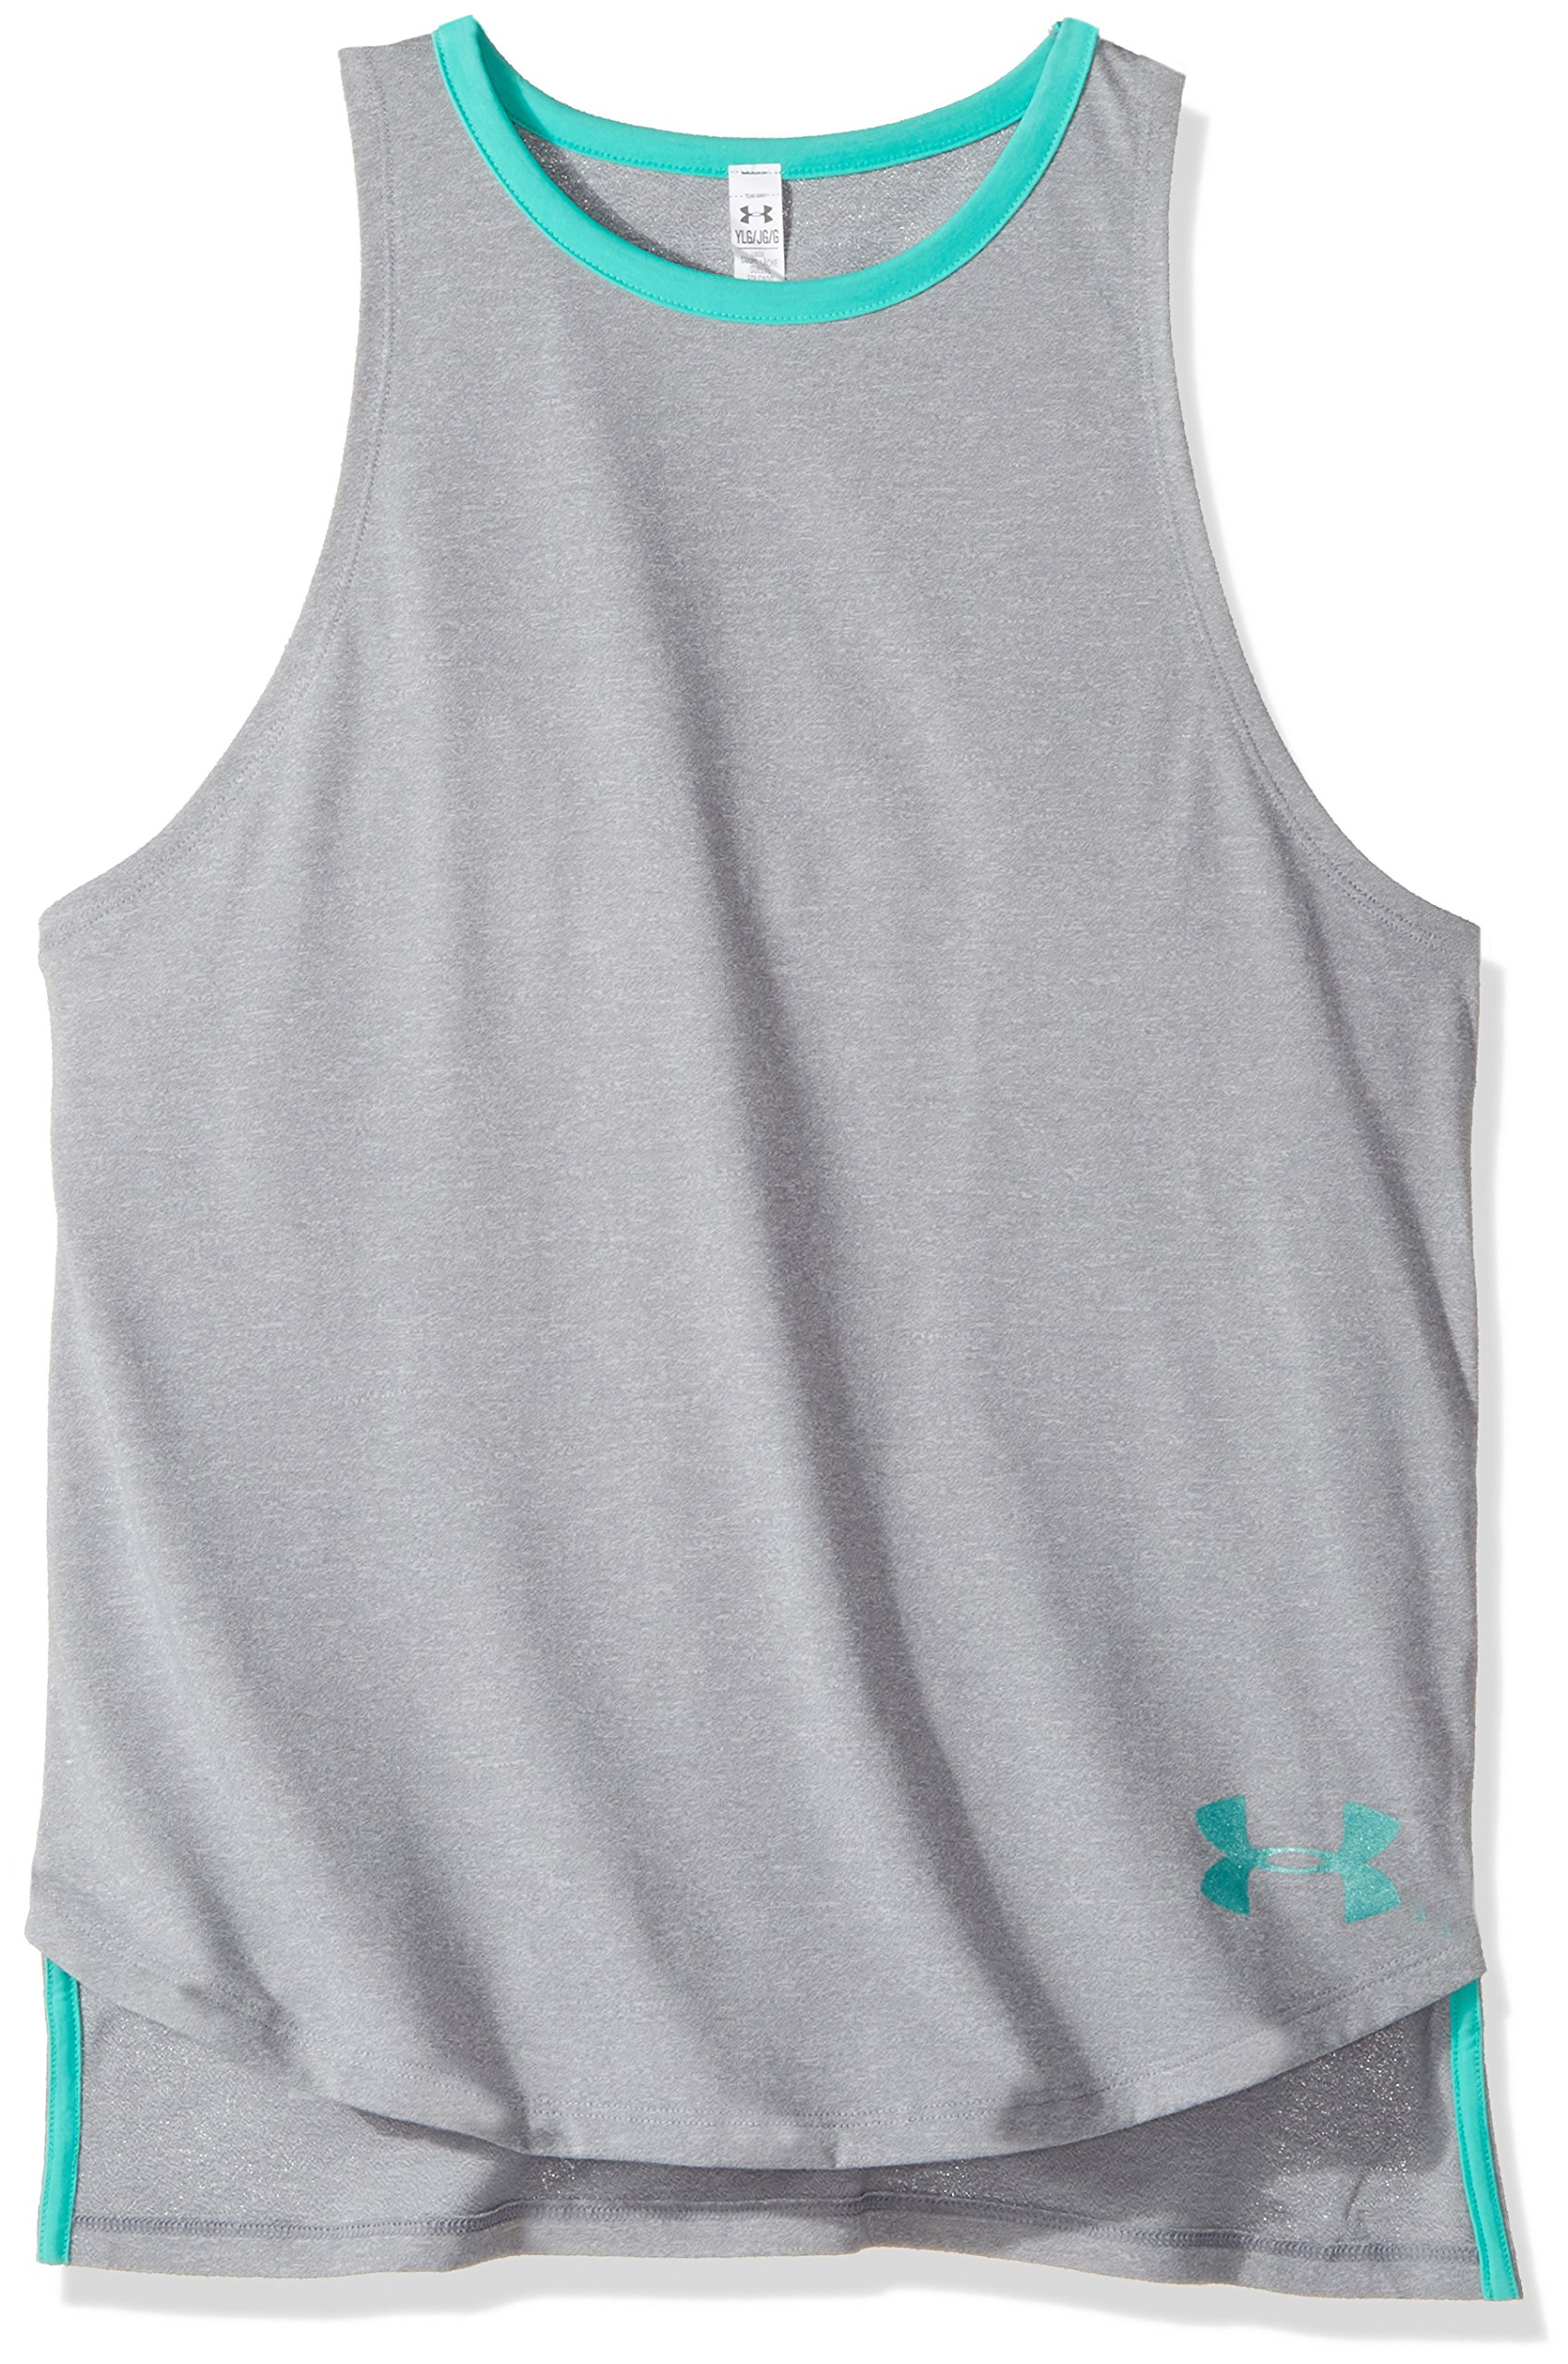 Under Armour Girls Threadborne Play Up Tank Top,Steel /Absinthe Green, Youth X-Small